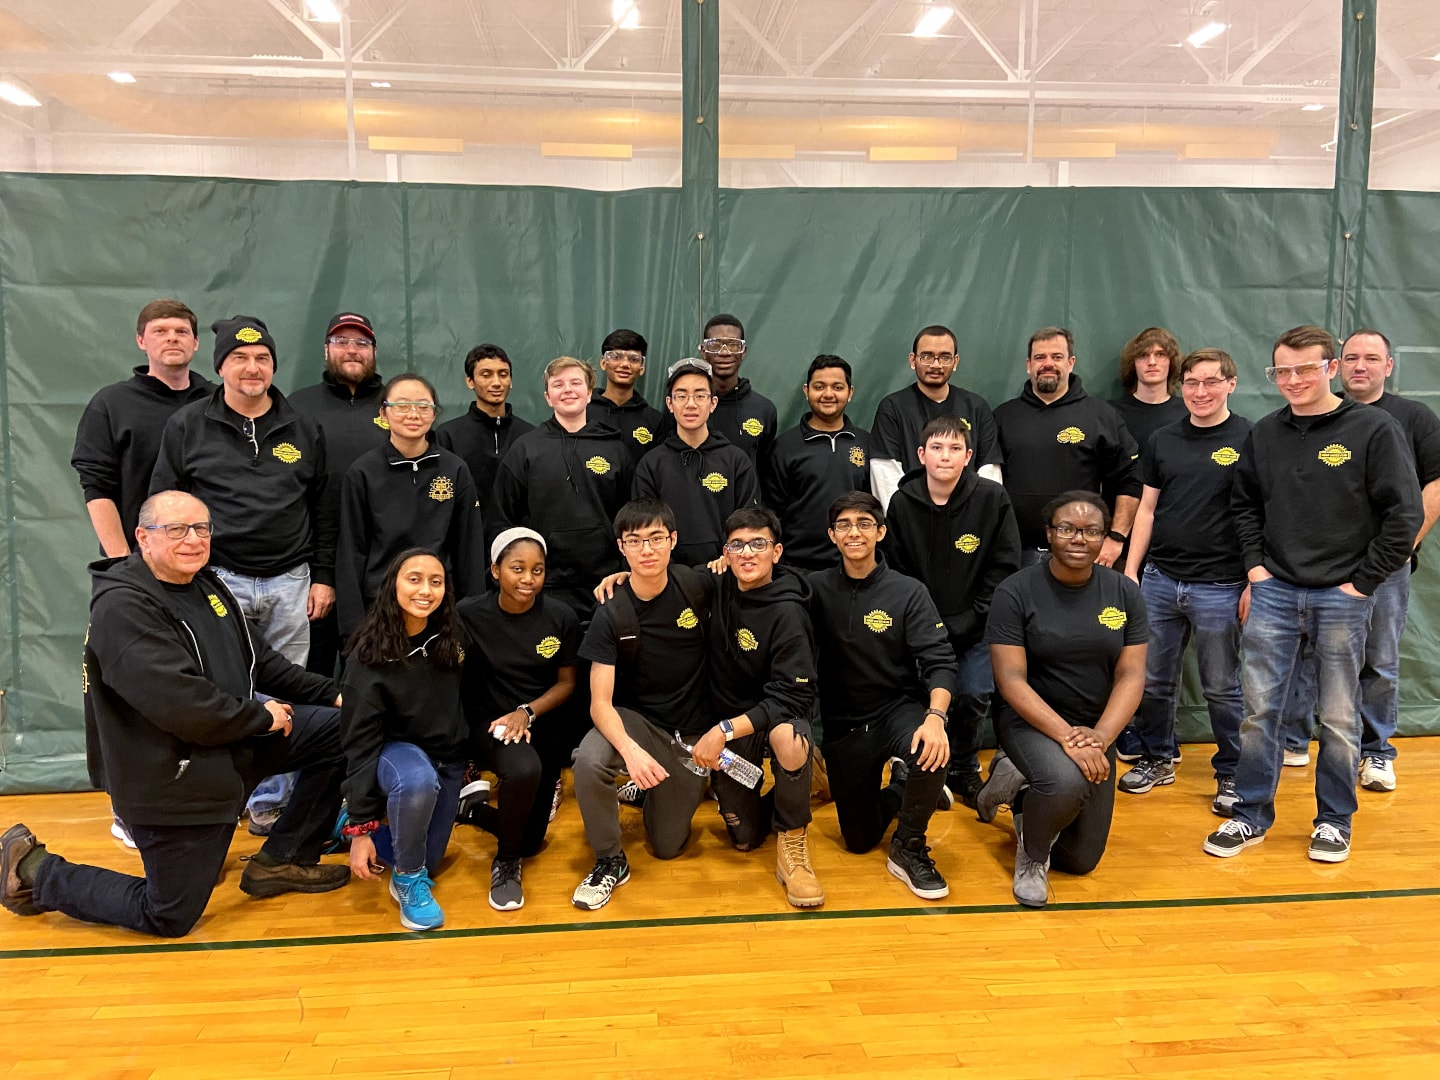 Group photo of Team 5962 at Bishop Guertin Week 0 Event 2020